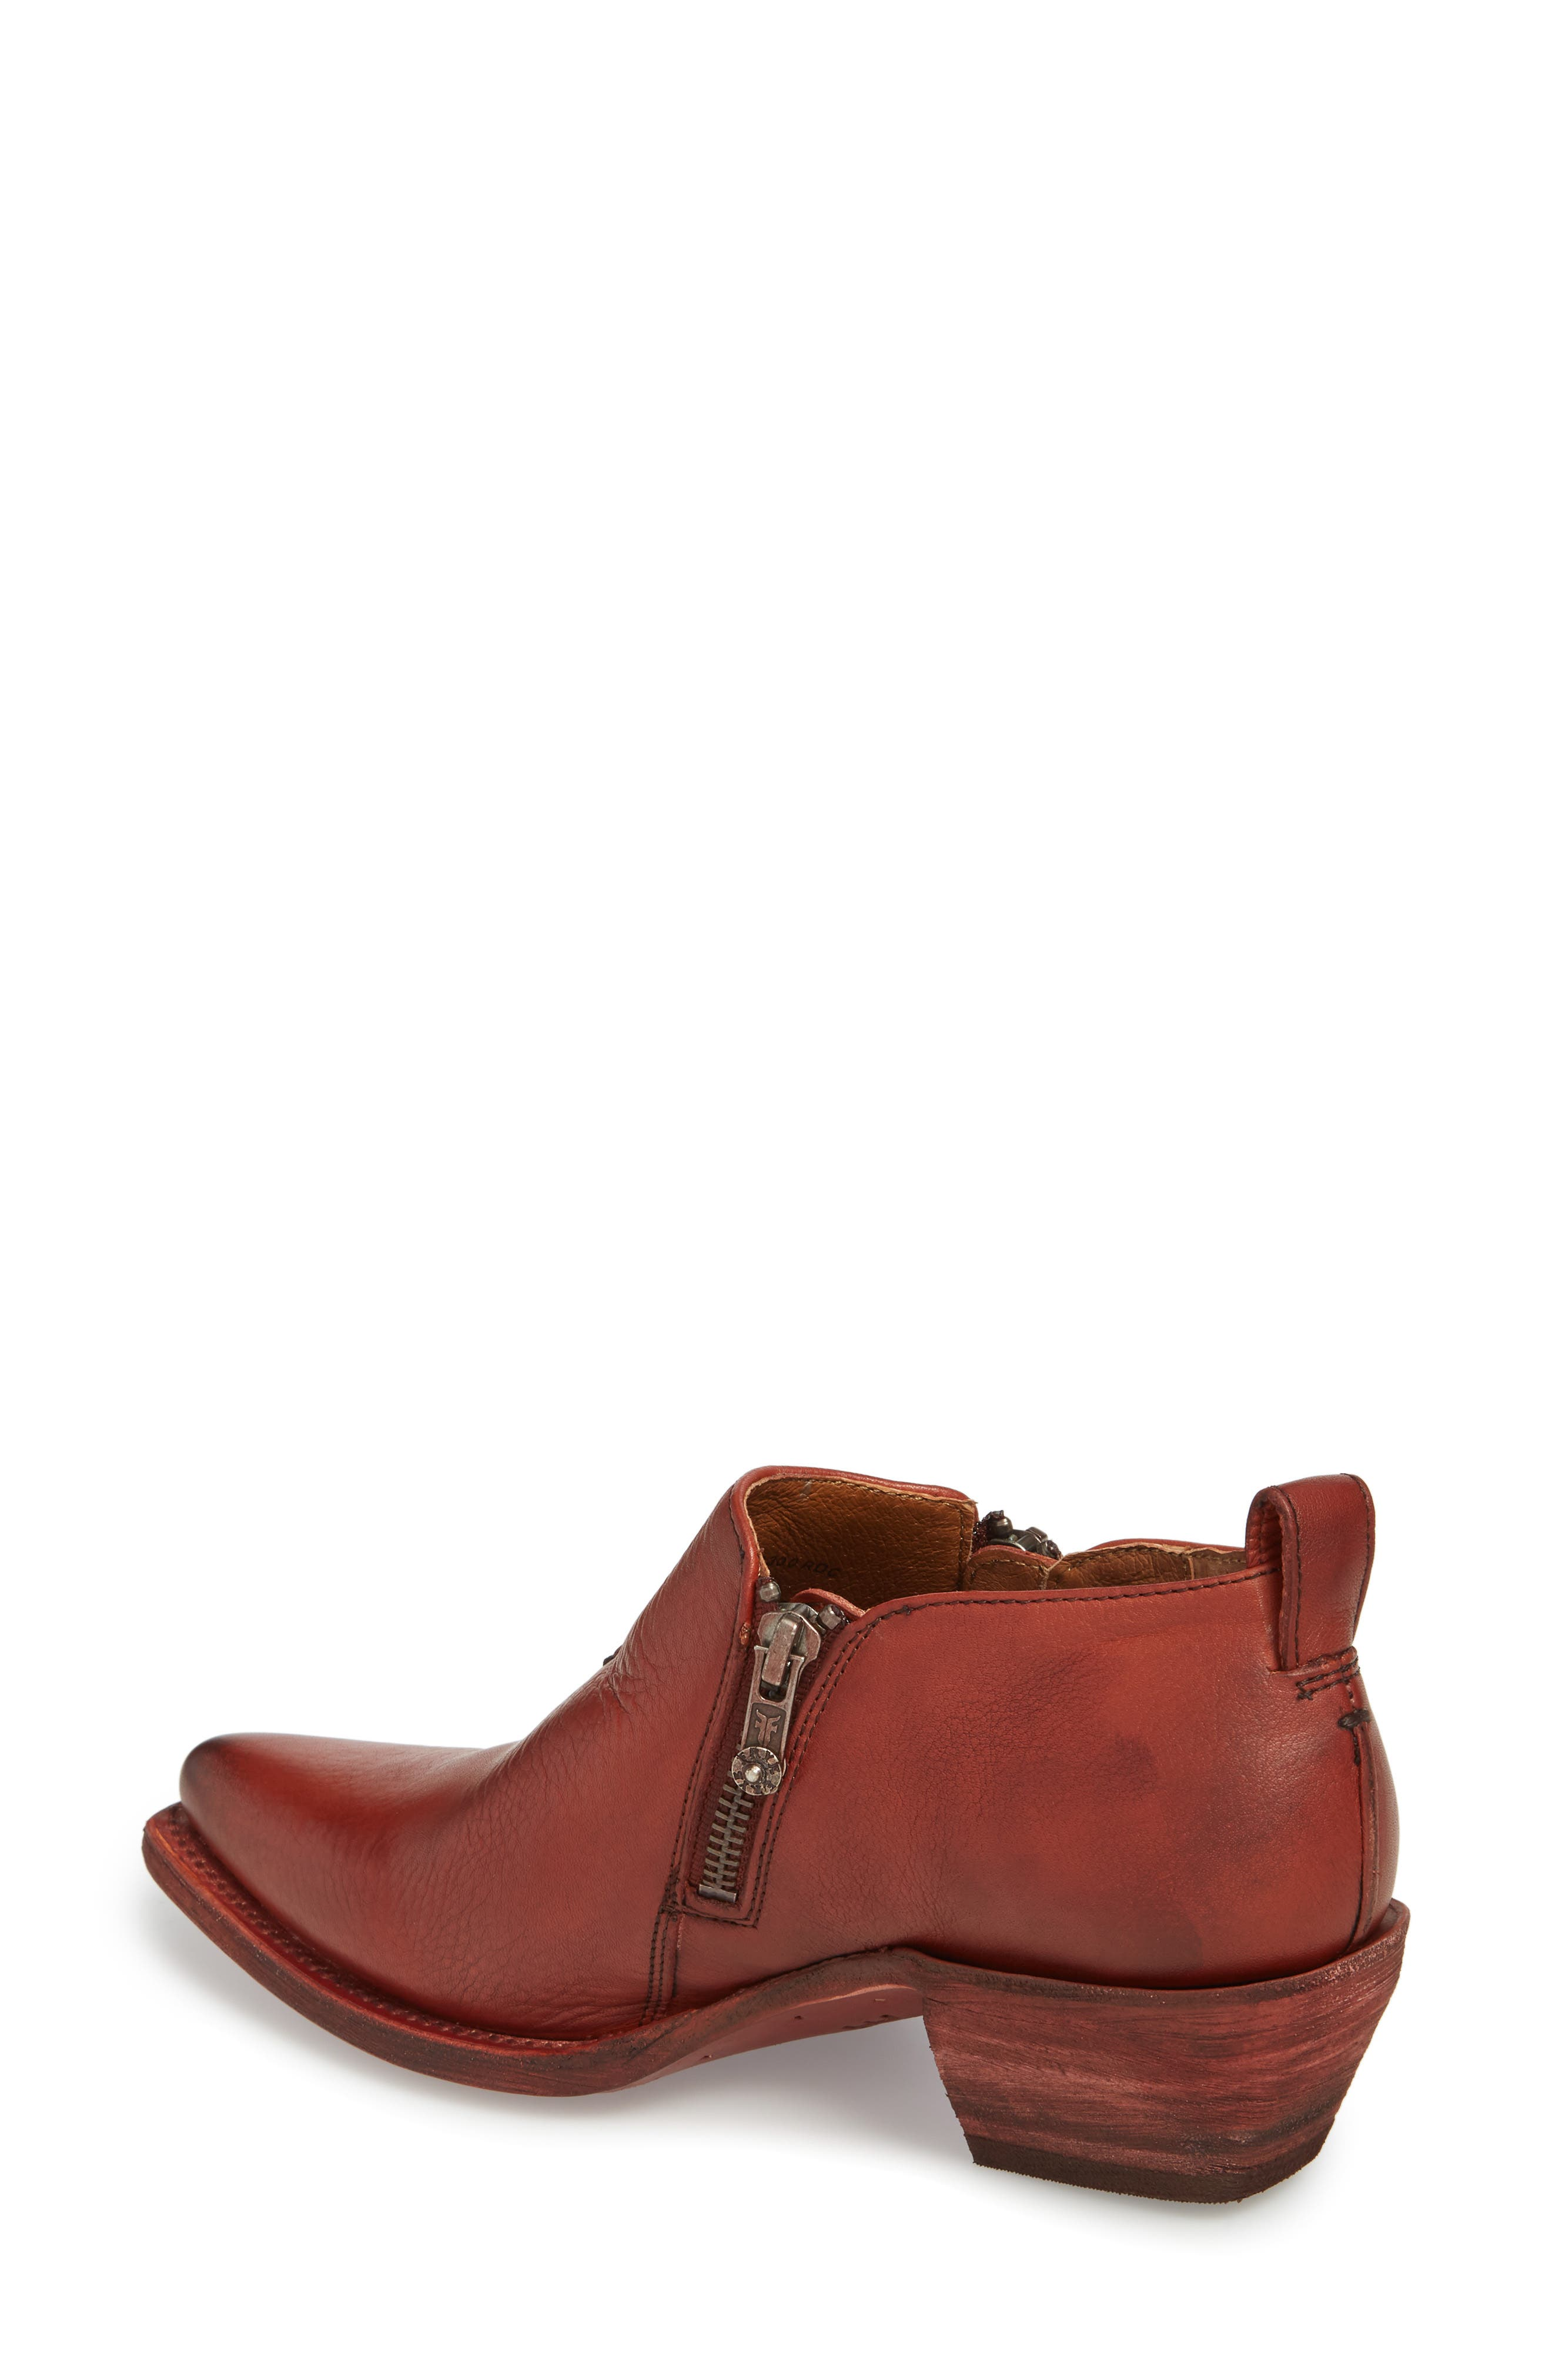 'Sacha' Moto Shootie,                             Alternate thumbnail 2, color,                             RED CLAY LEATHER